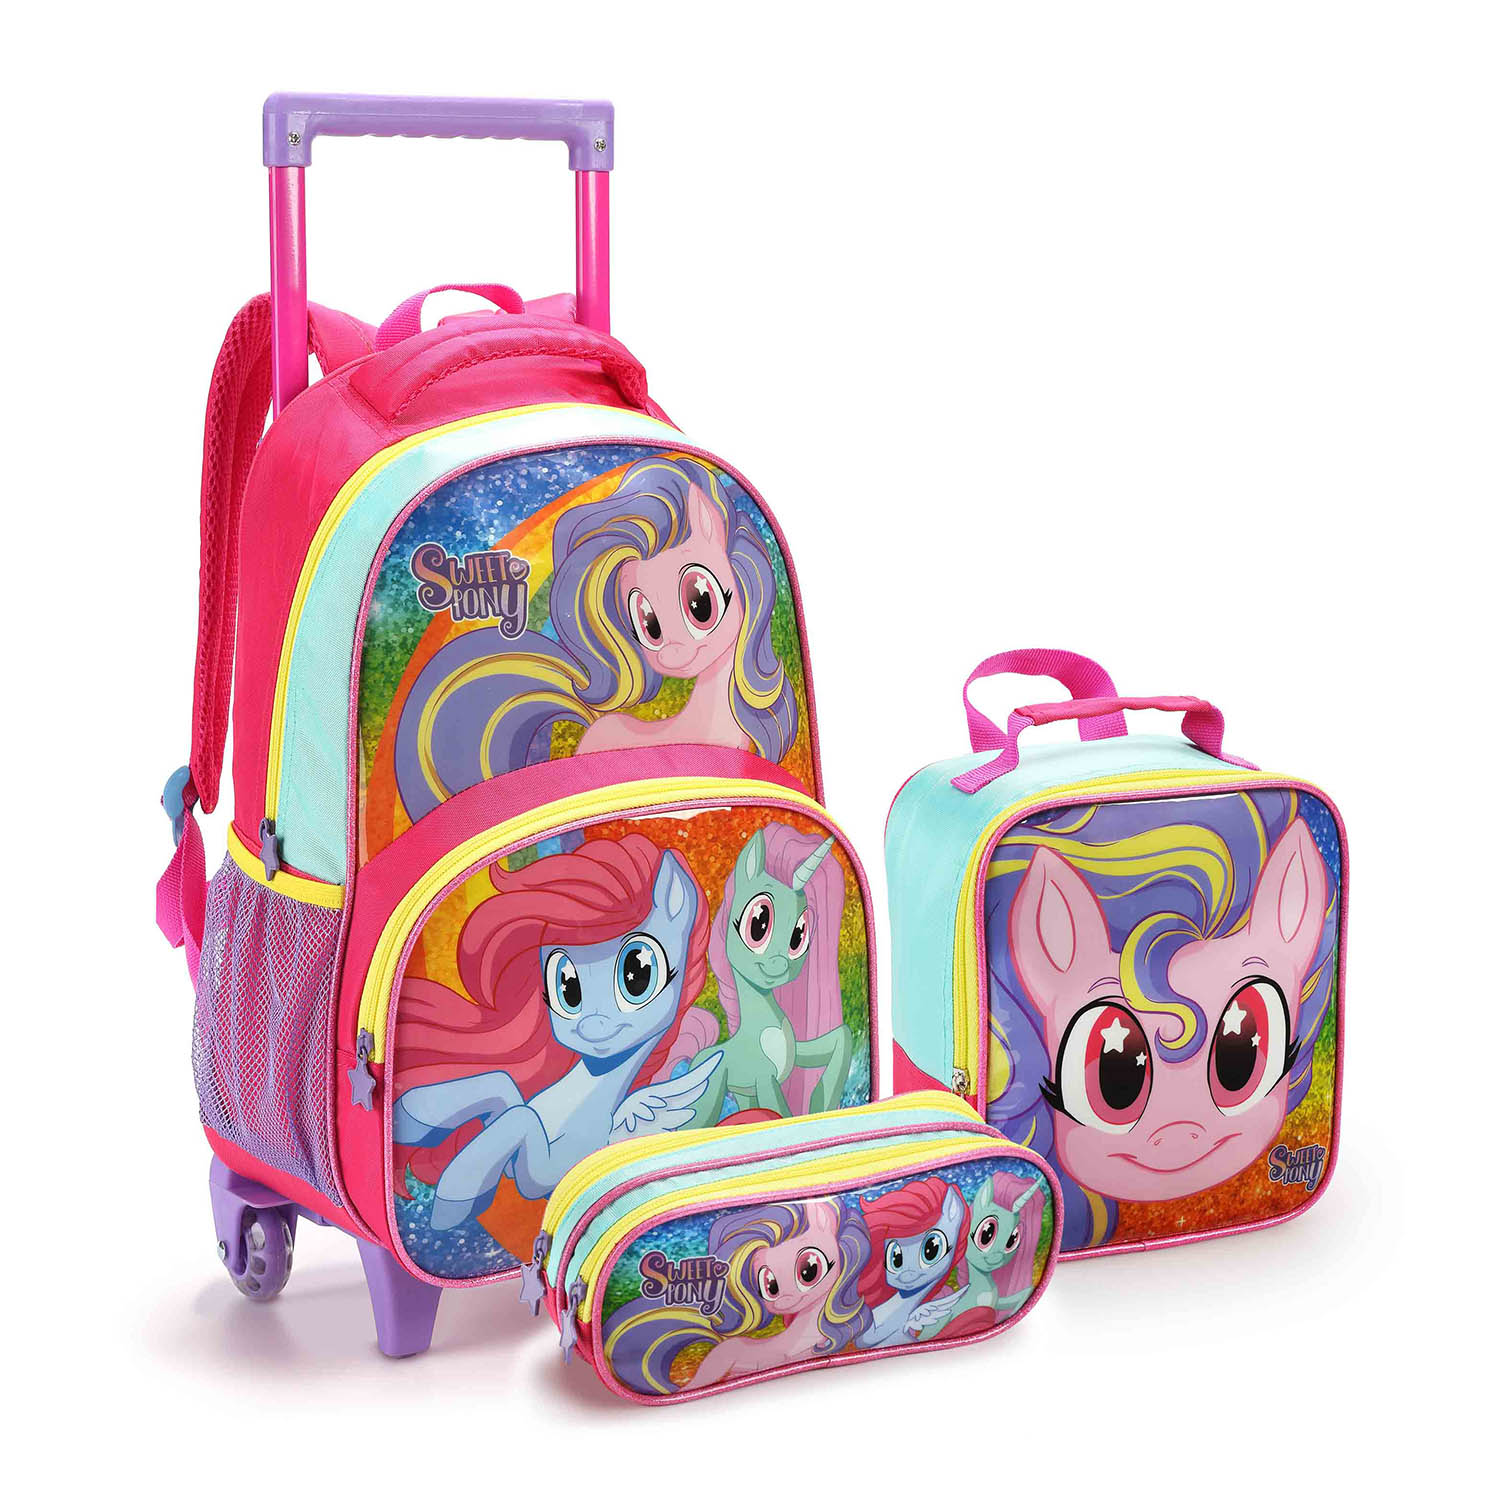 KIT ESCOLAR SWEET PONEY PINK - SEANITE